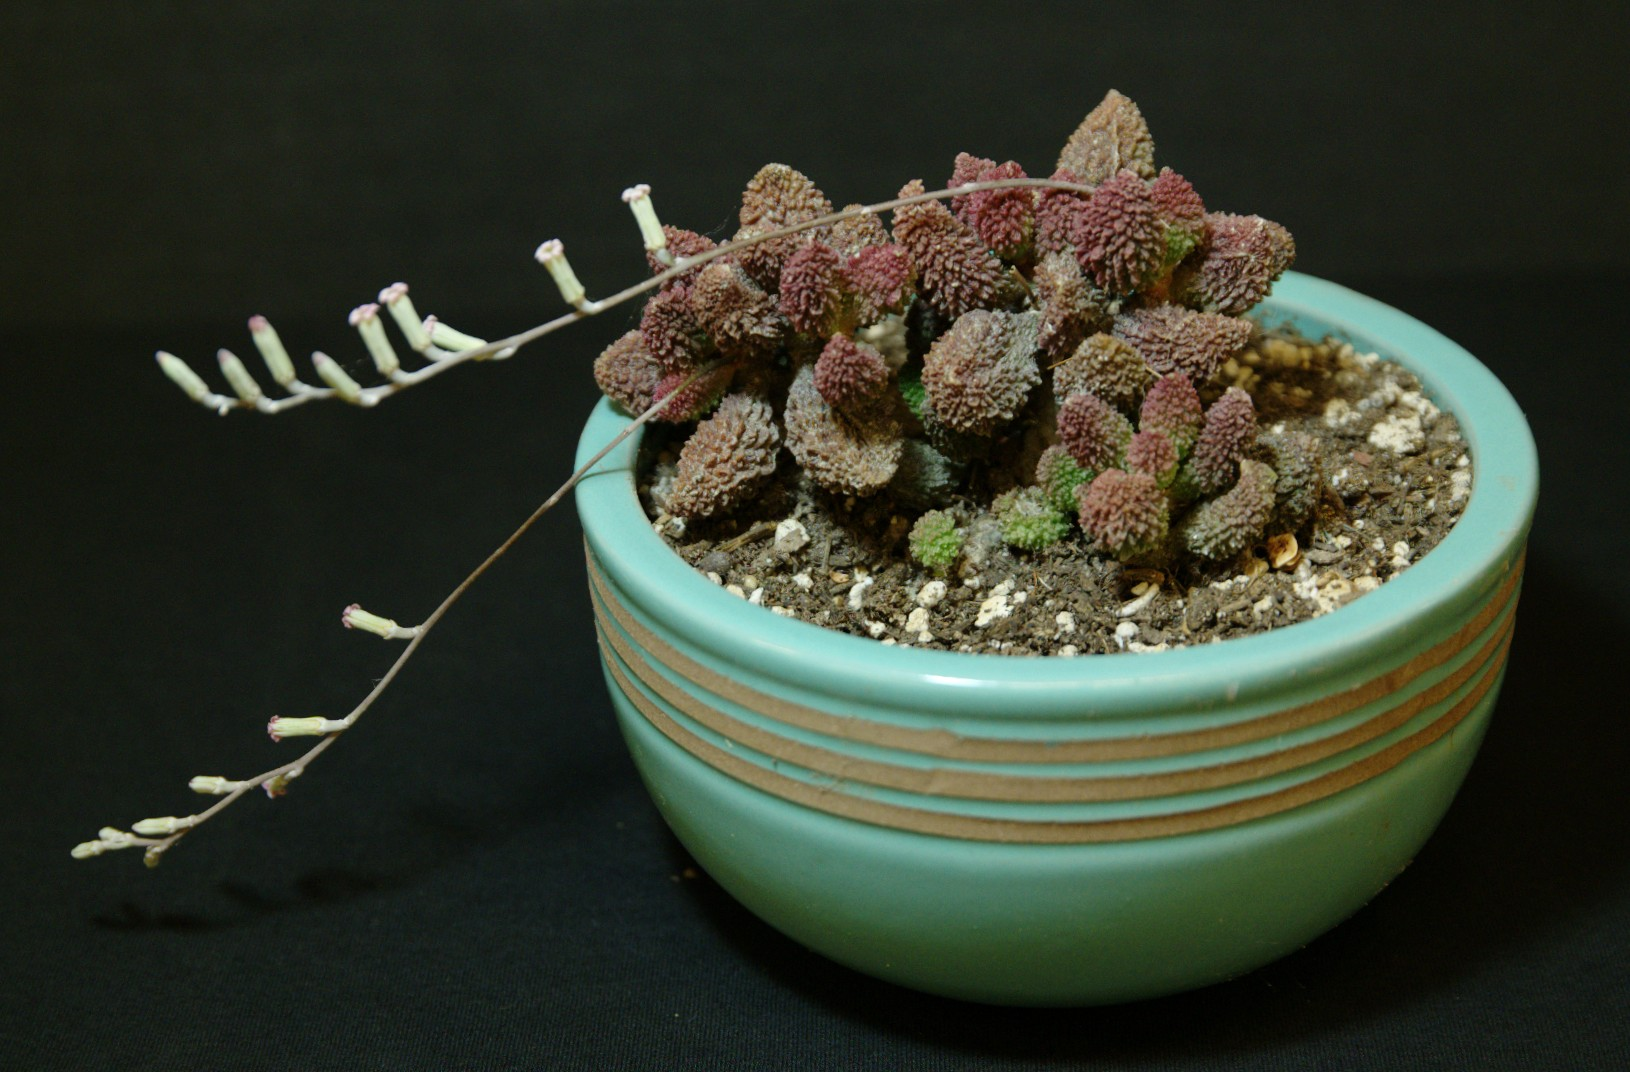 SCCSS 2016 September - Winner Novice Succulent - Martha Bjerke - Adromischus marianae